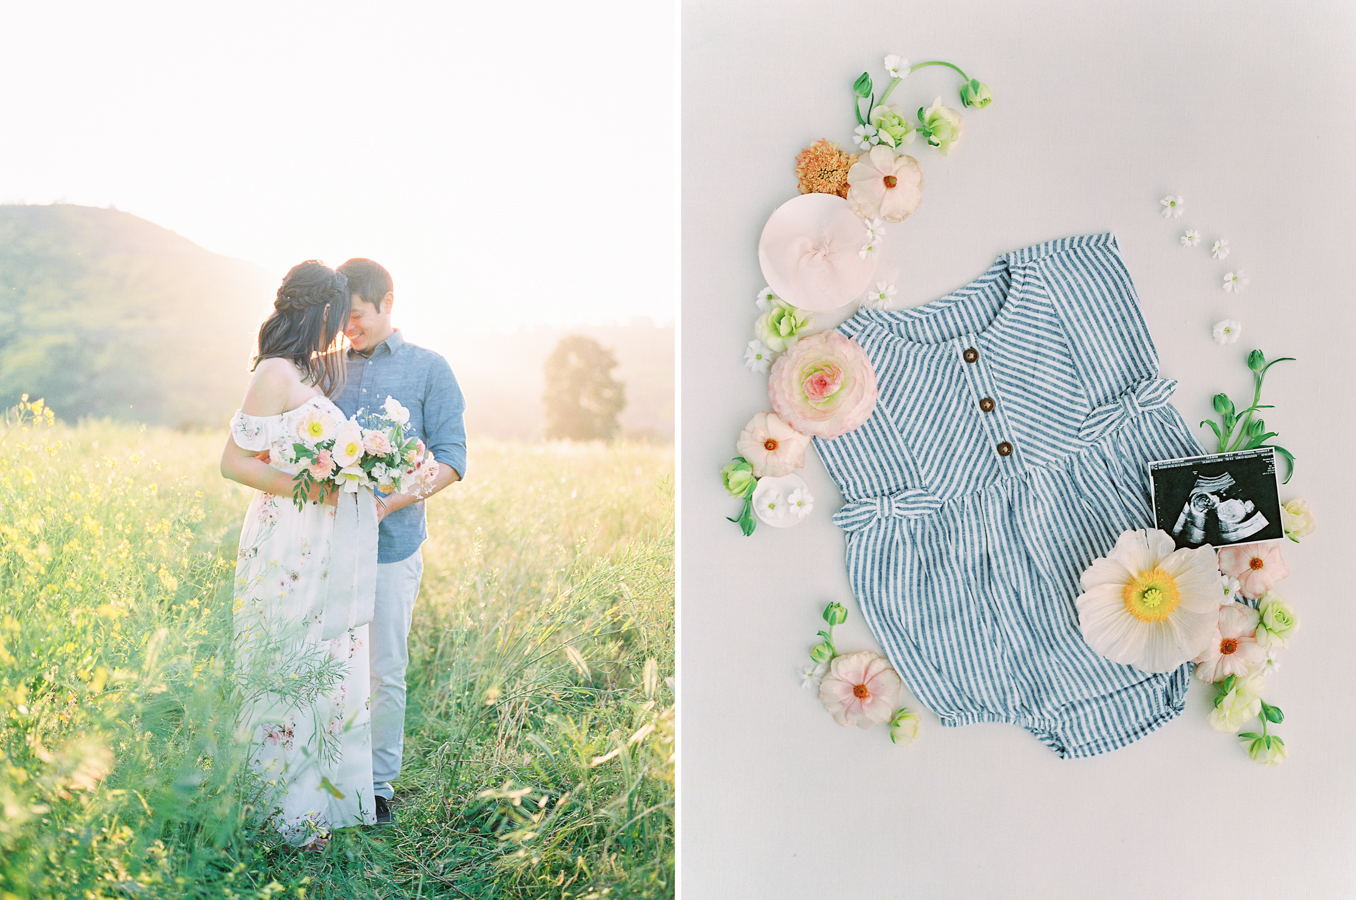 Maternity_Session_Family_Film_Photographer_Flower_Field_Los_Angeles_AKP-3.jpg